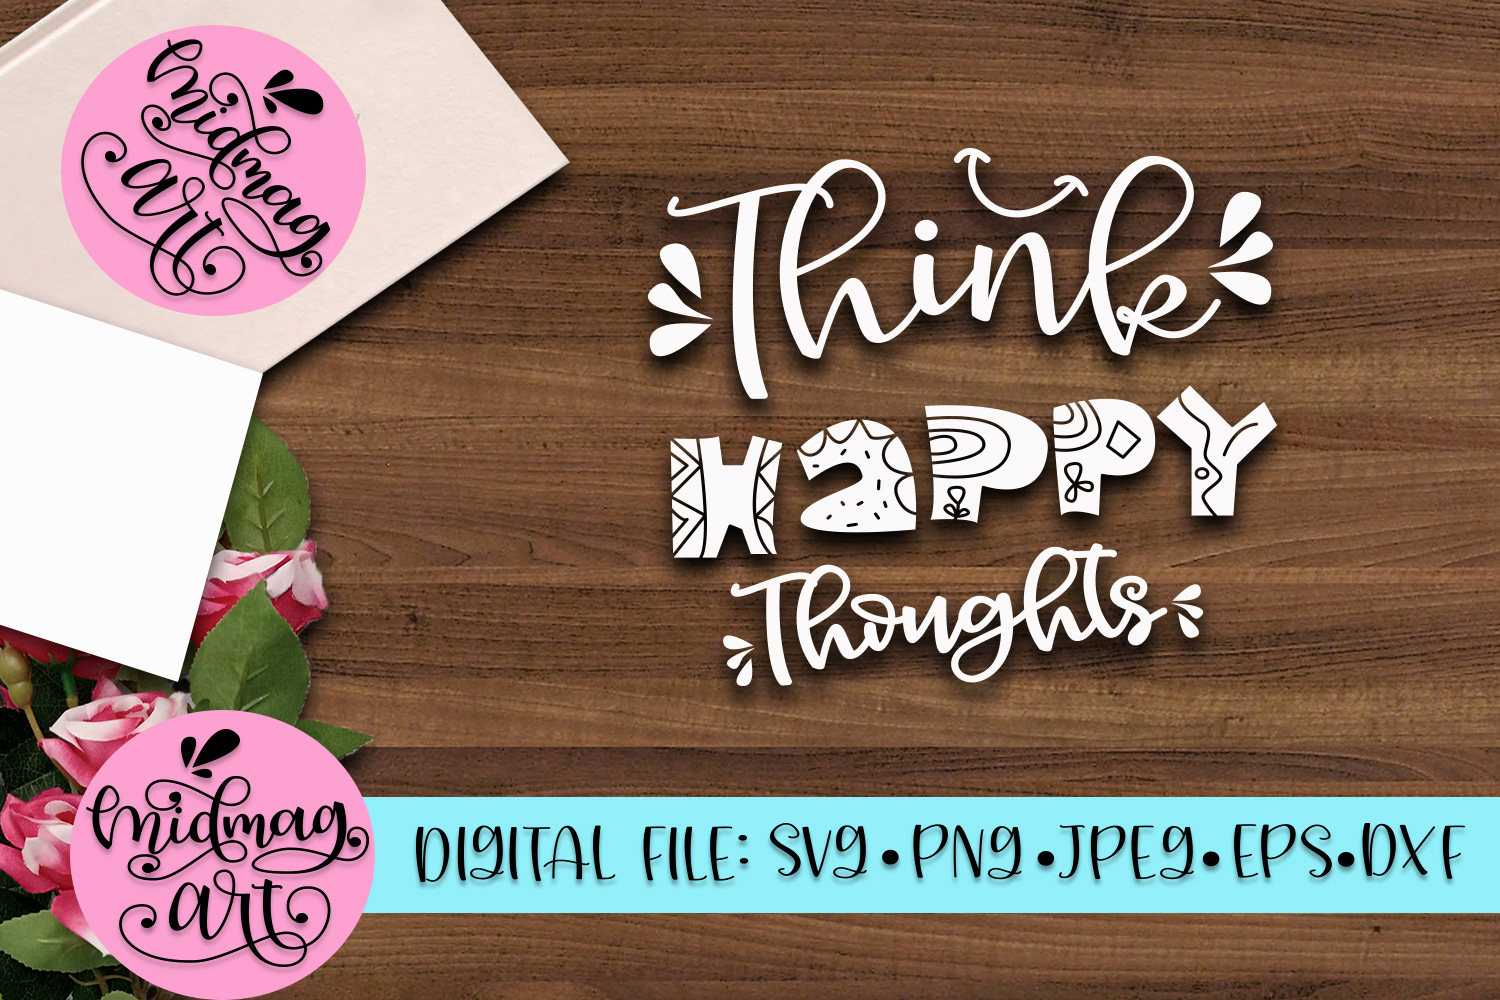 Think happy thoughts svg, png, jpeg, eps and dxf example image 2